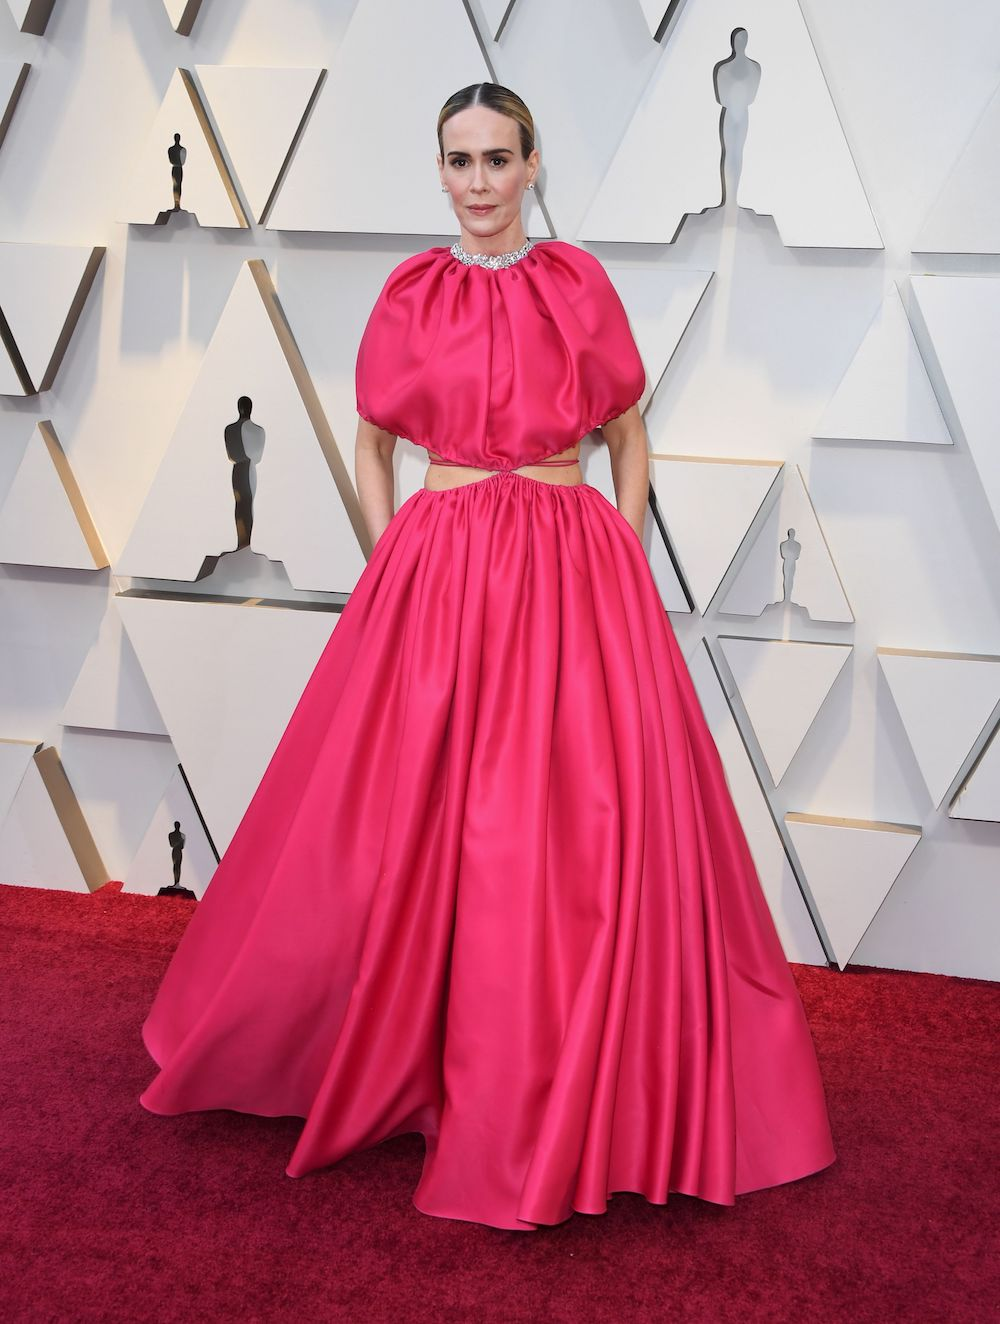 Oscars Red Carpet Fashion Trend Is Hot Pink Gowns - HelloGiggles